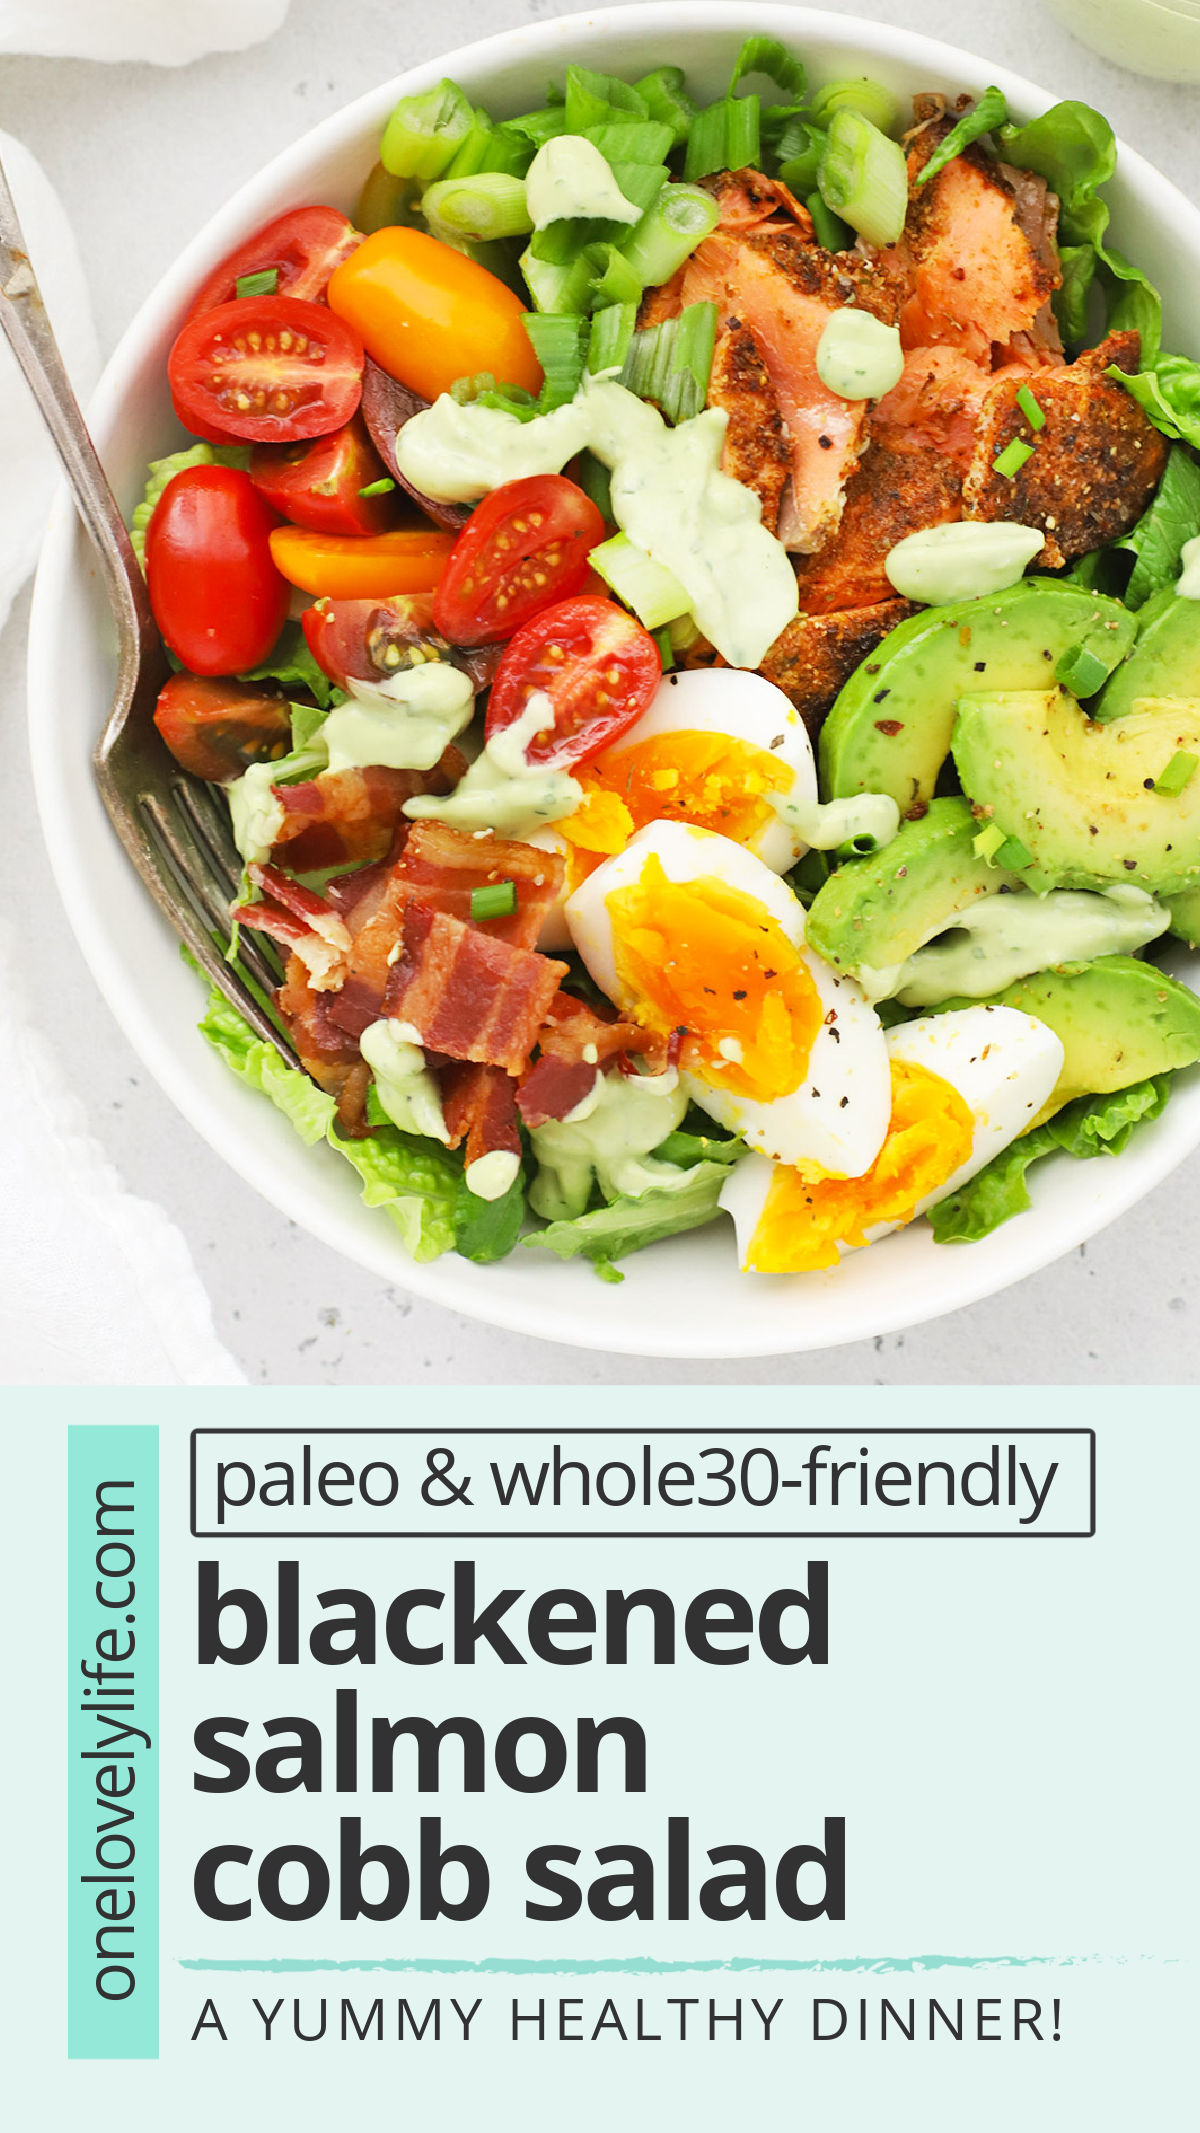 Blackened Salmon Cobb Salad - This salmon Cobb salad full of colorful veggies and finished with a creamy avocado green goddess dressing we can't get enough of! (Paleo, Whole30-Friendly) // Salmon Salad // Blackened Salmon Recipe // Salmon Cobb Recipe // Healthy Dinner #paleo #whole30 #cobbsalad #greengoddess